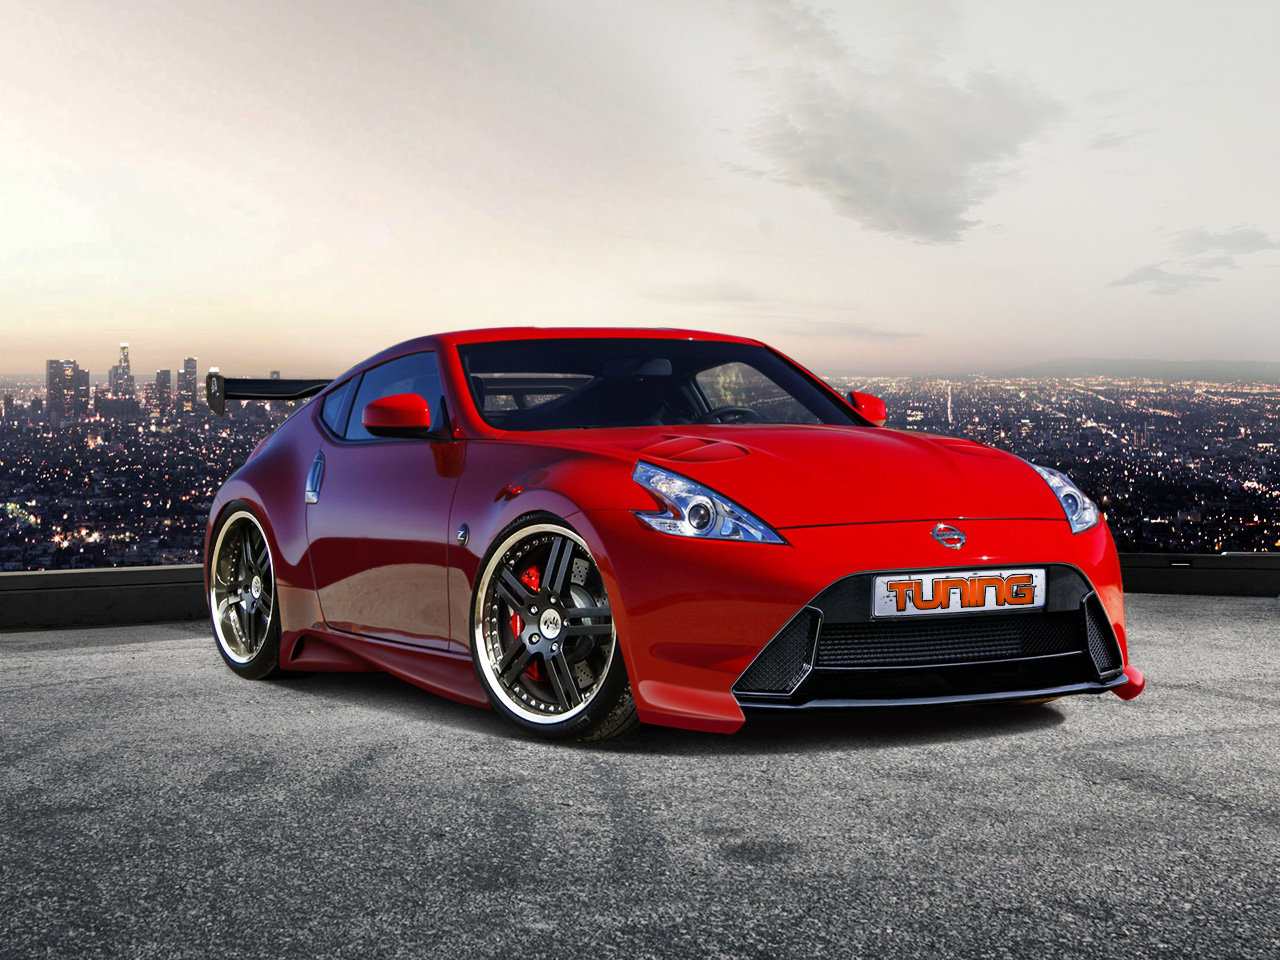 Red Nissan 370z Wallpaper Computer Wallpaper